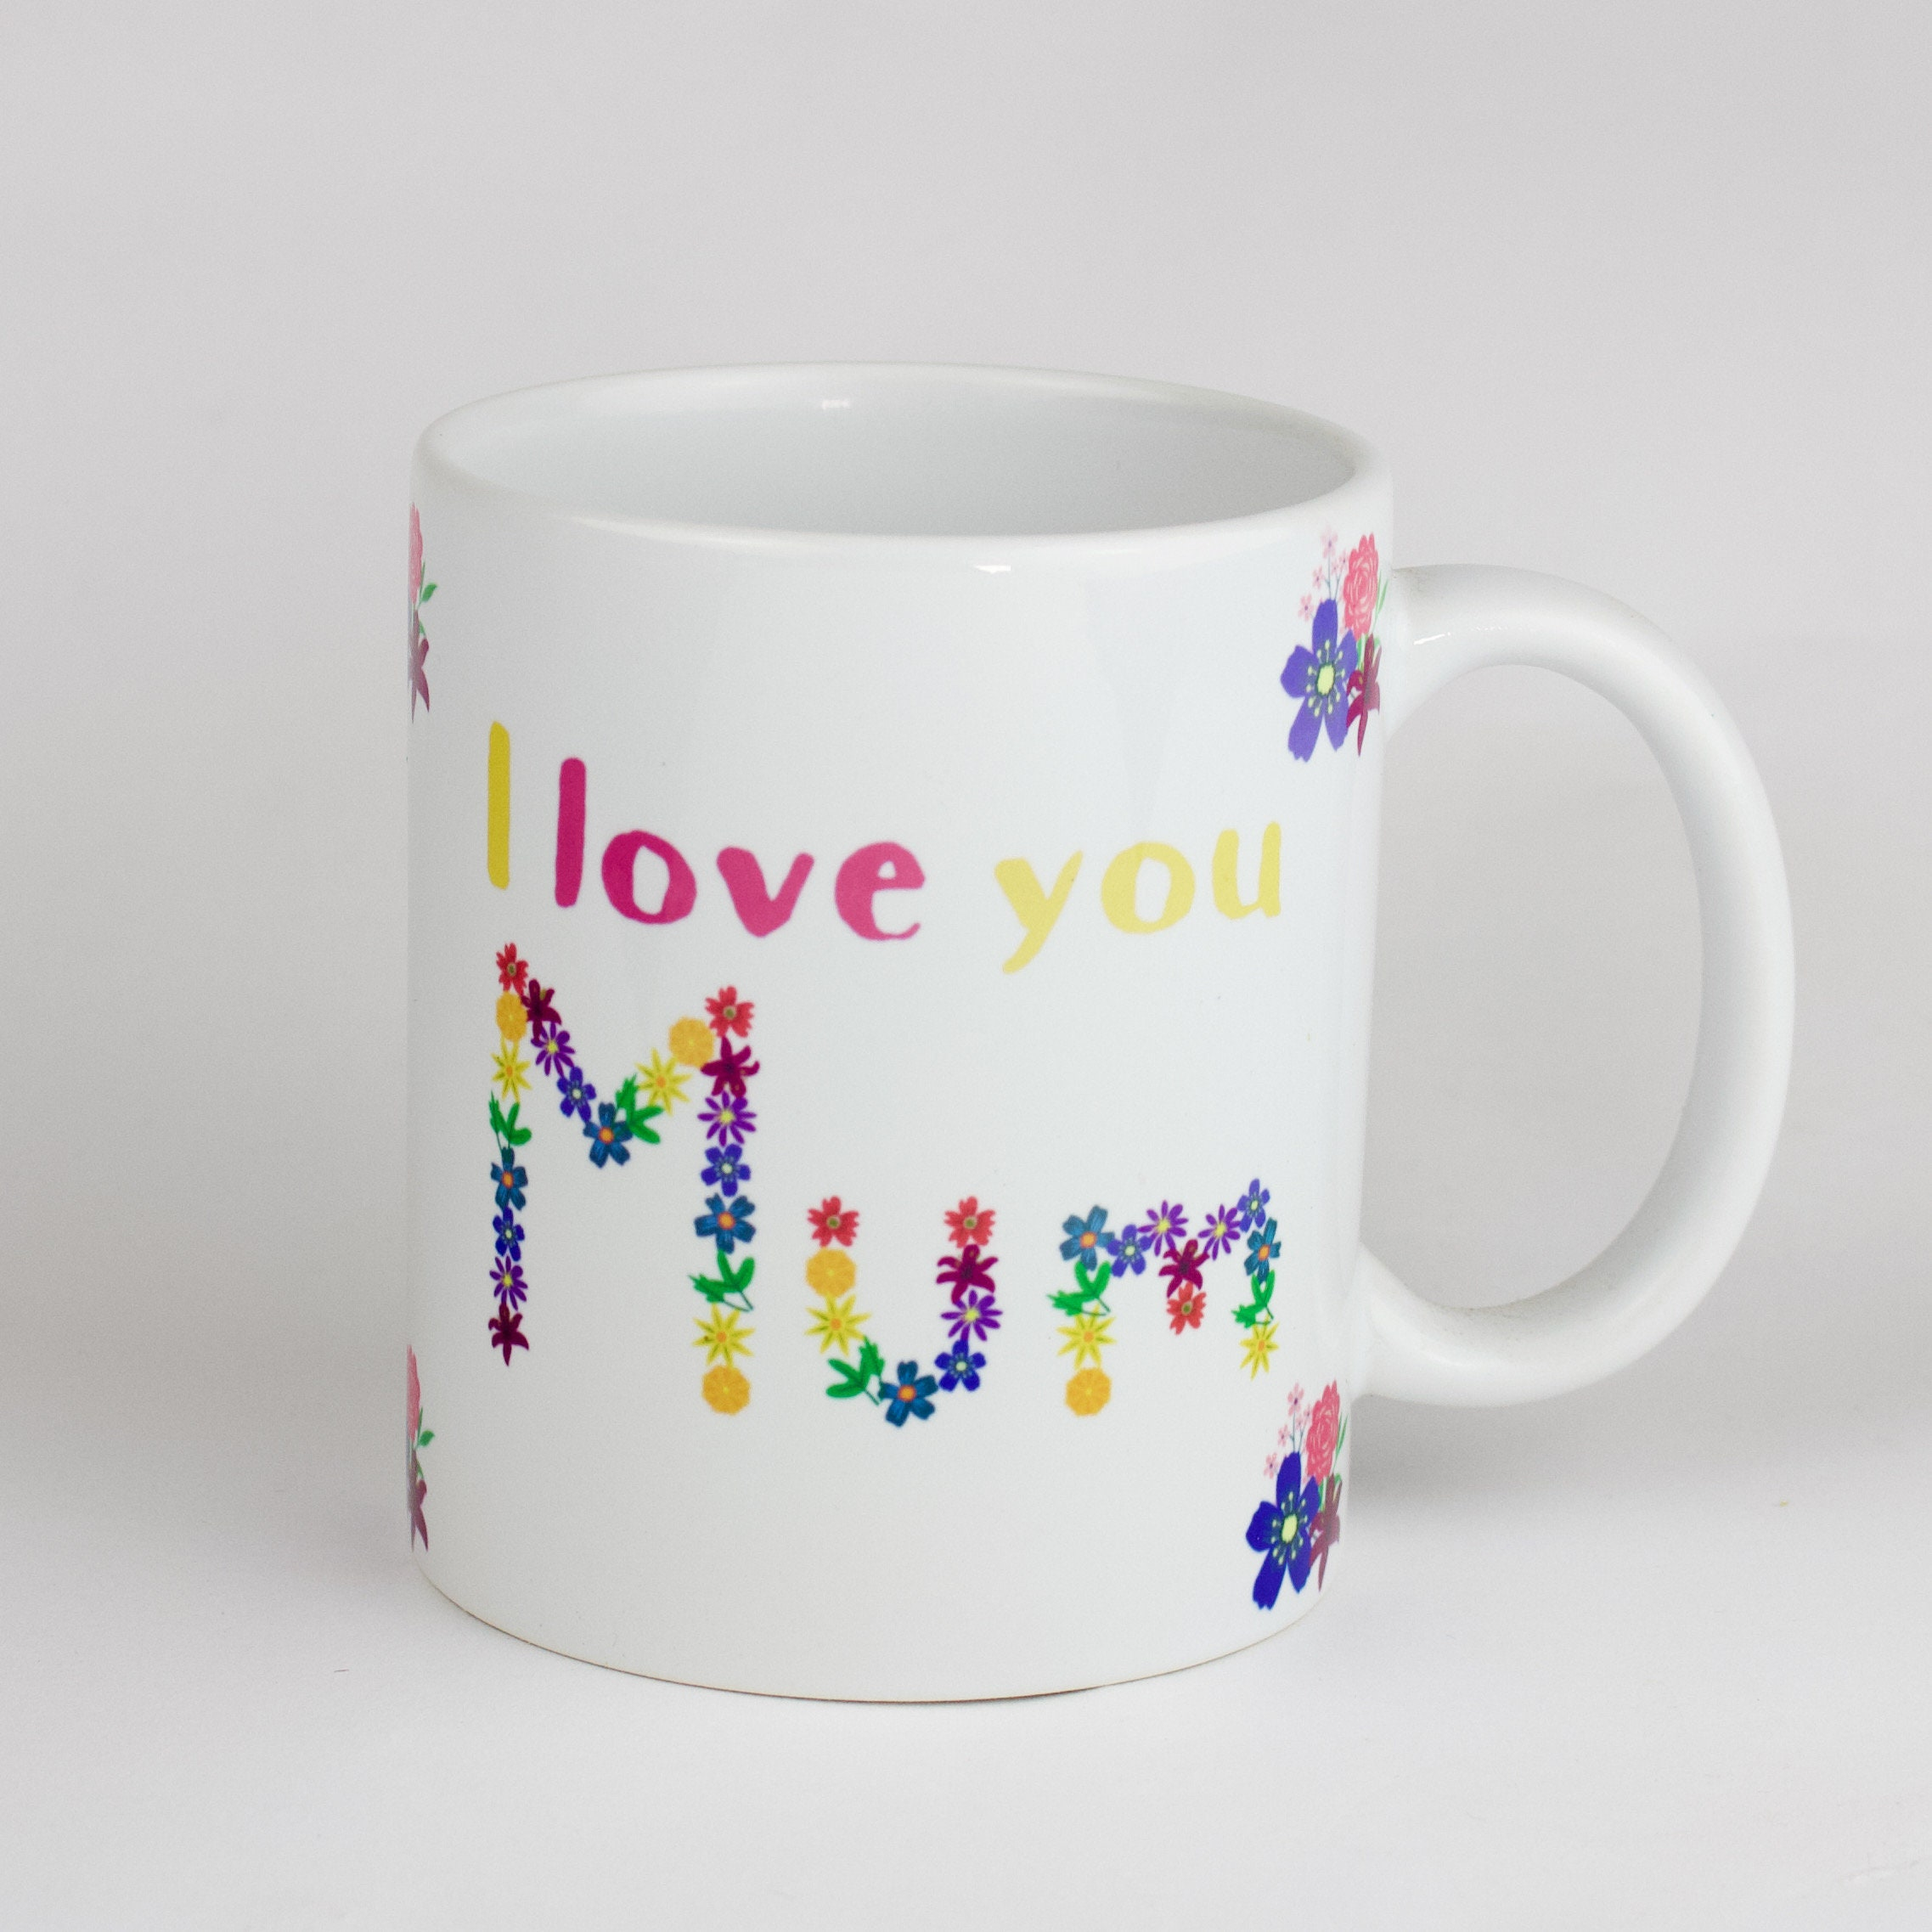 Details about  /Grammie Llama Llamas Mom Mother/'s Day Mom Lover Mother/'s Day Black Mug 11oz 15oz